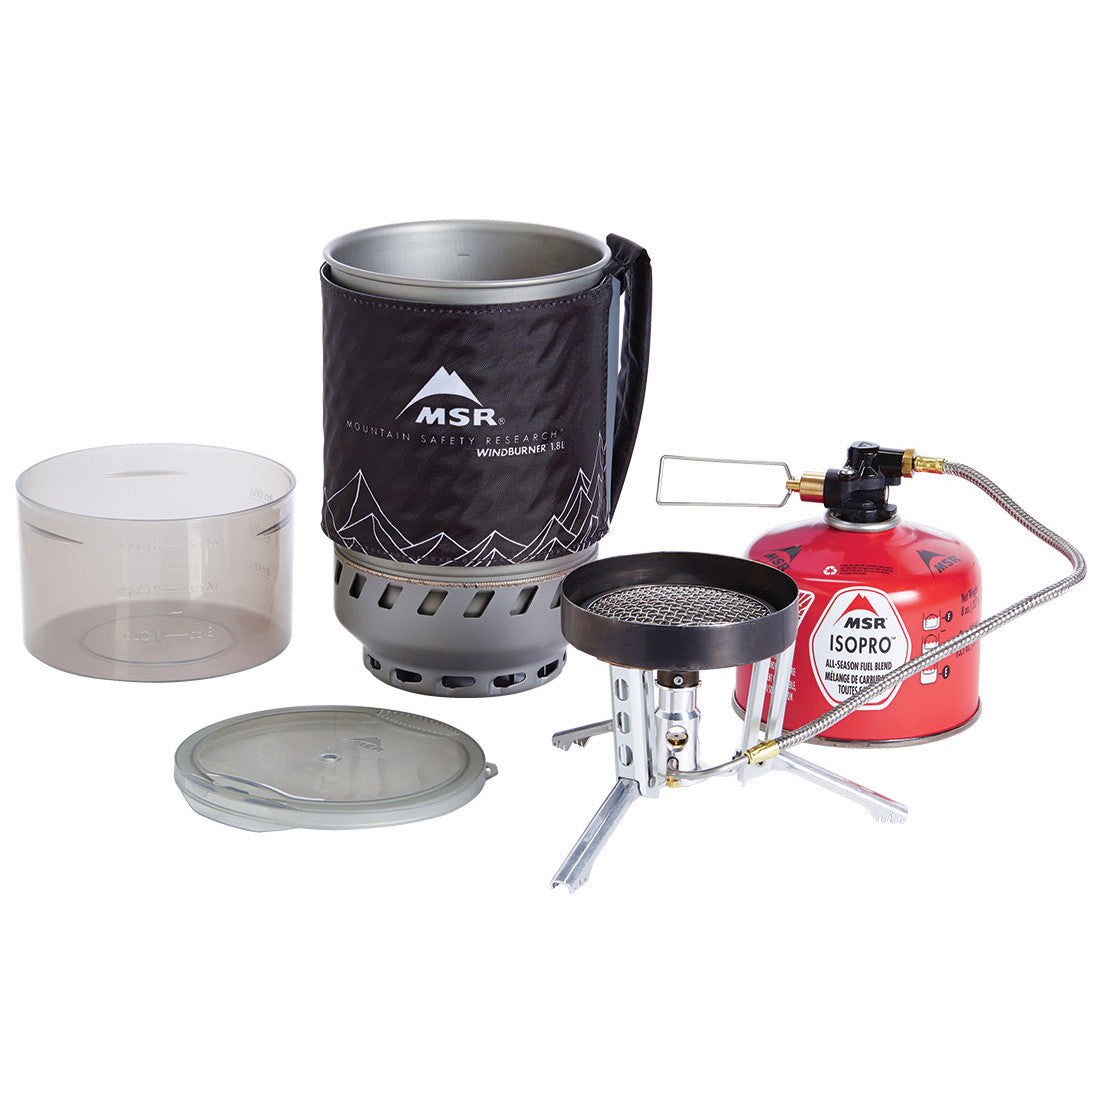 MSR WindBurner 1.8L Duo Camping Stove System